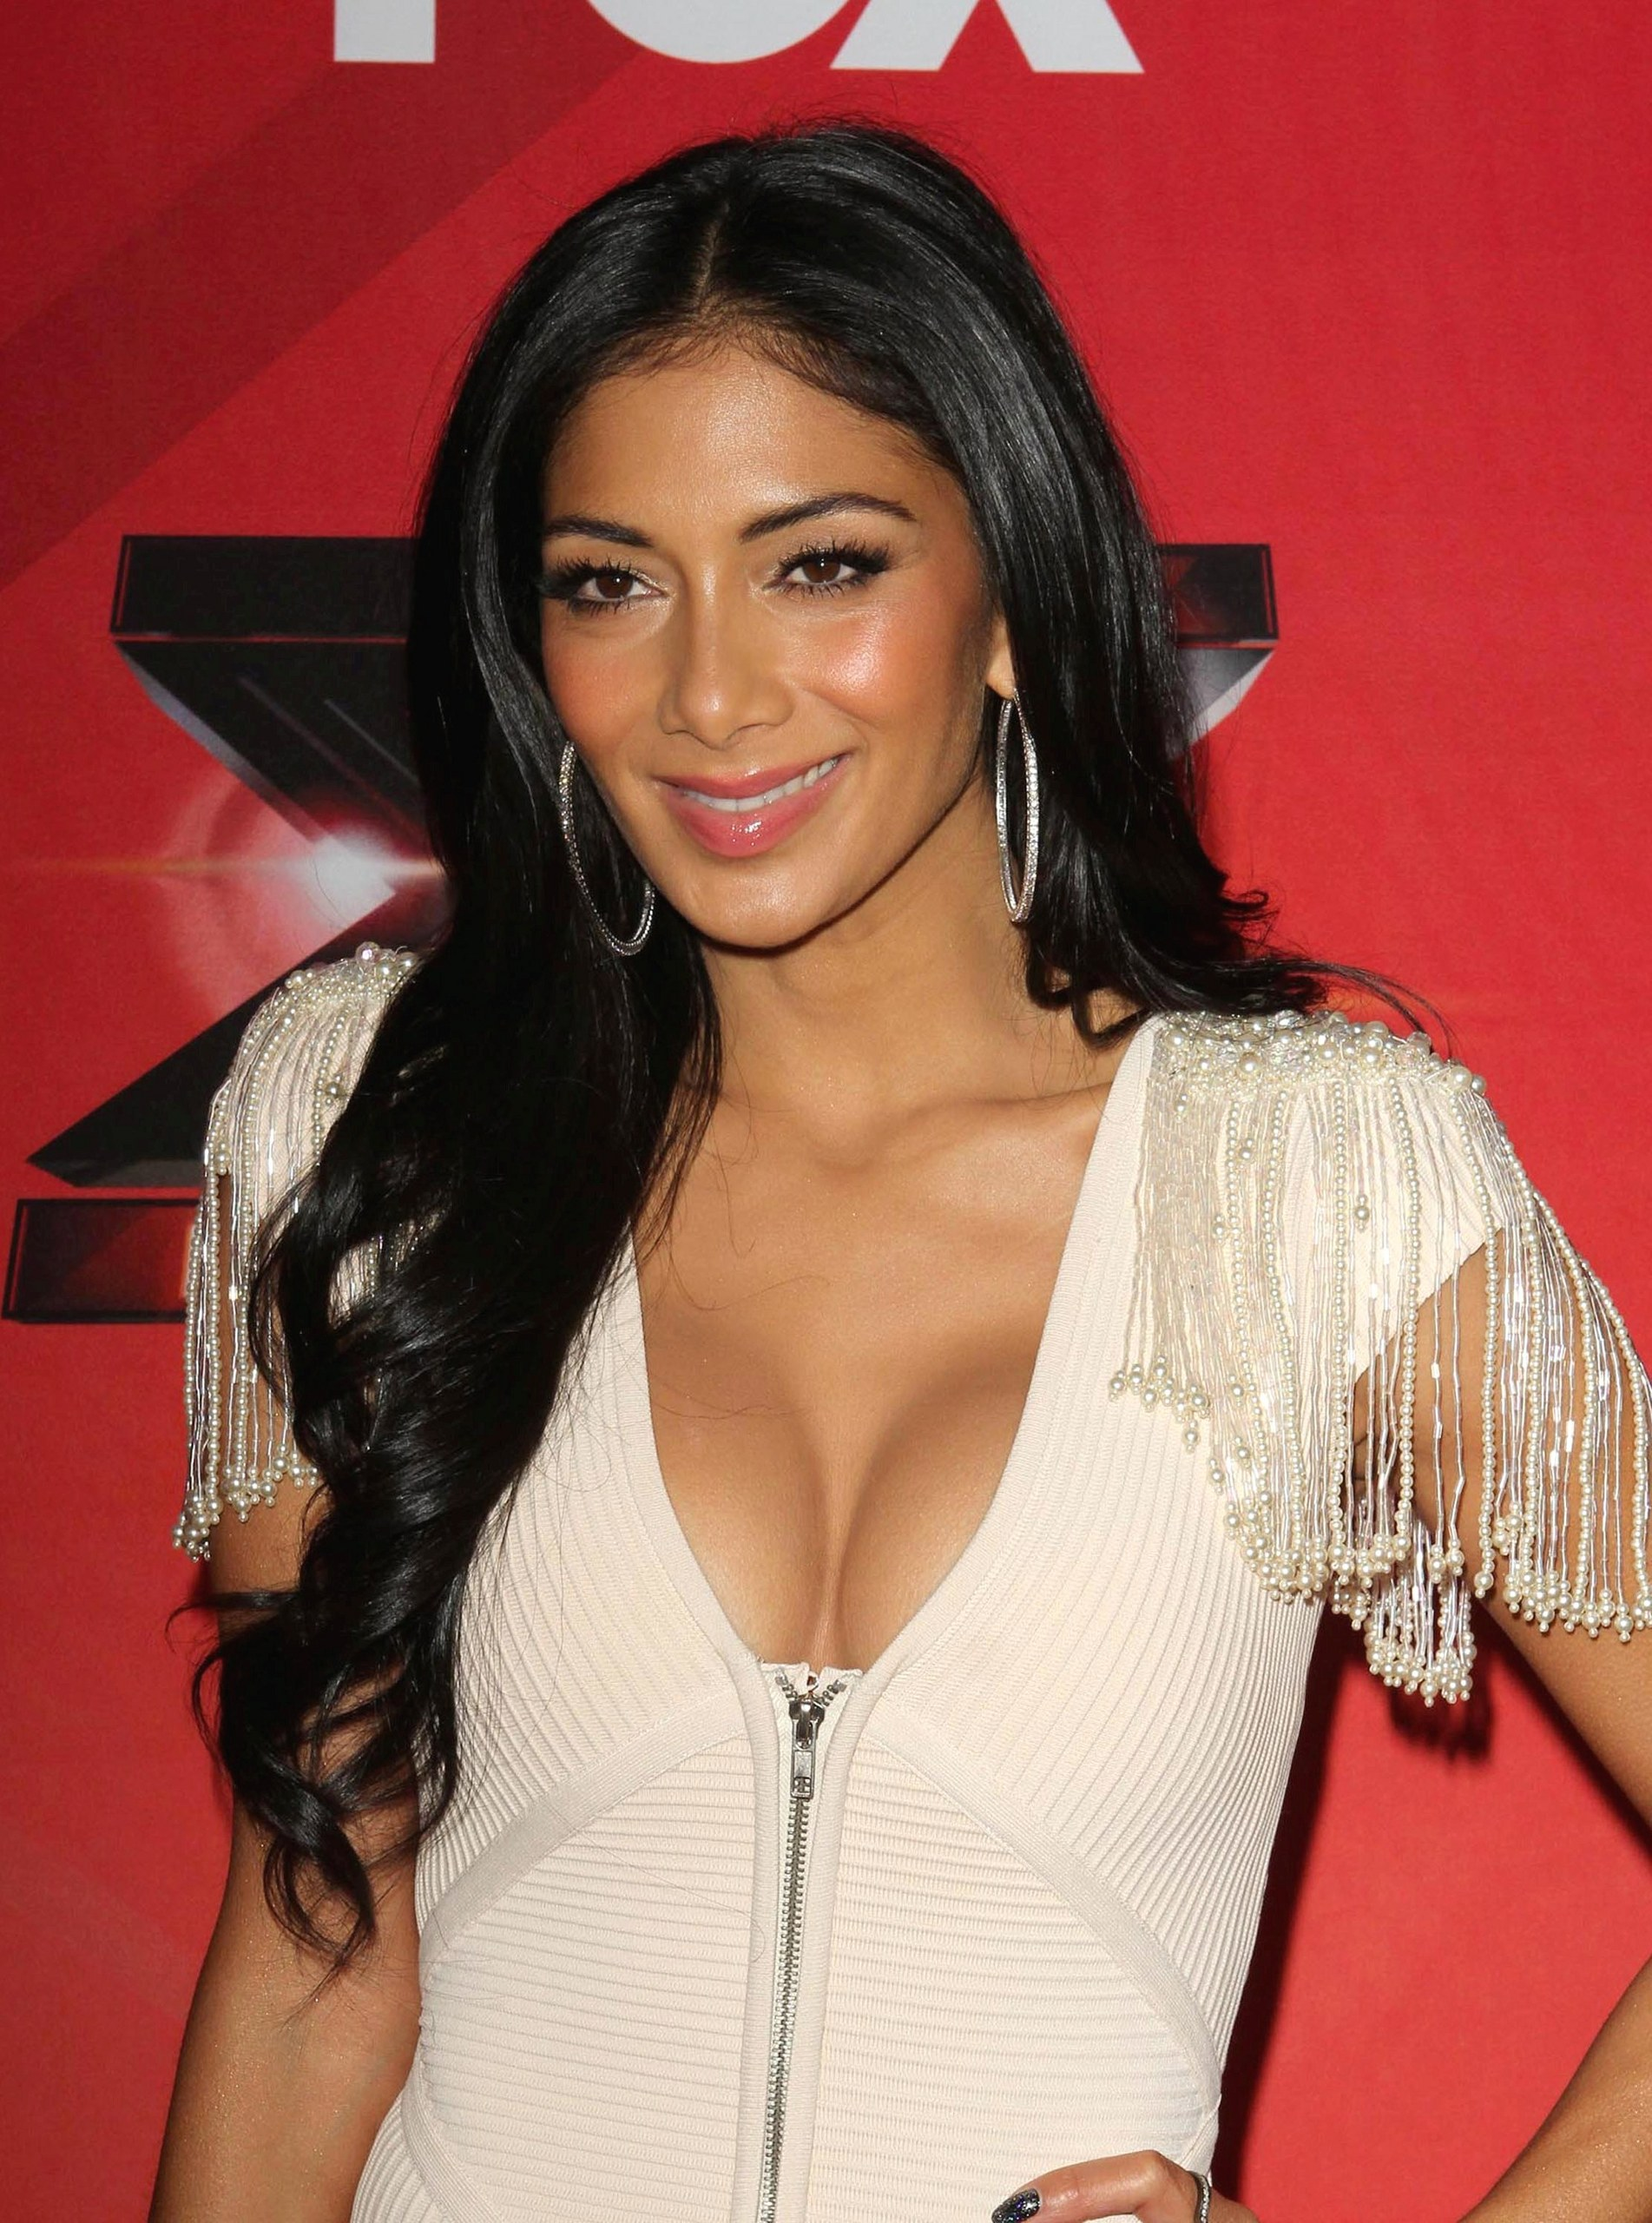 Cleavage Nicole Scherzinger nude (59 photo), Sexy, Cleavage, Boobs, underwear 2020